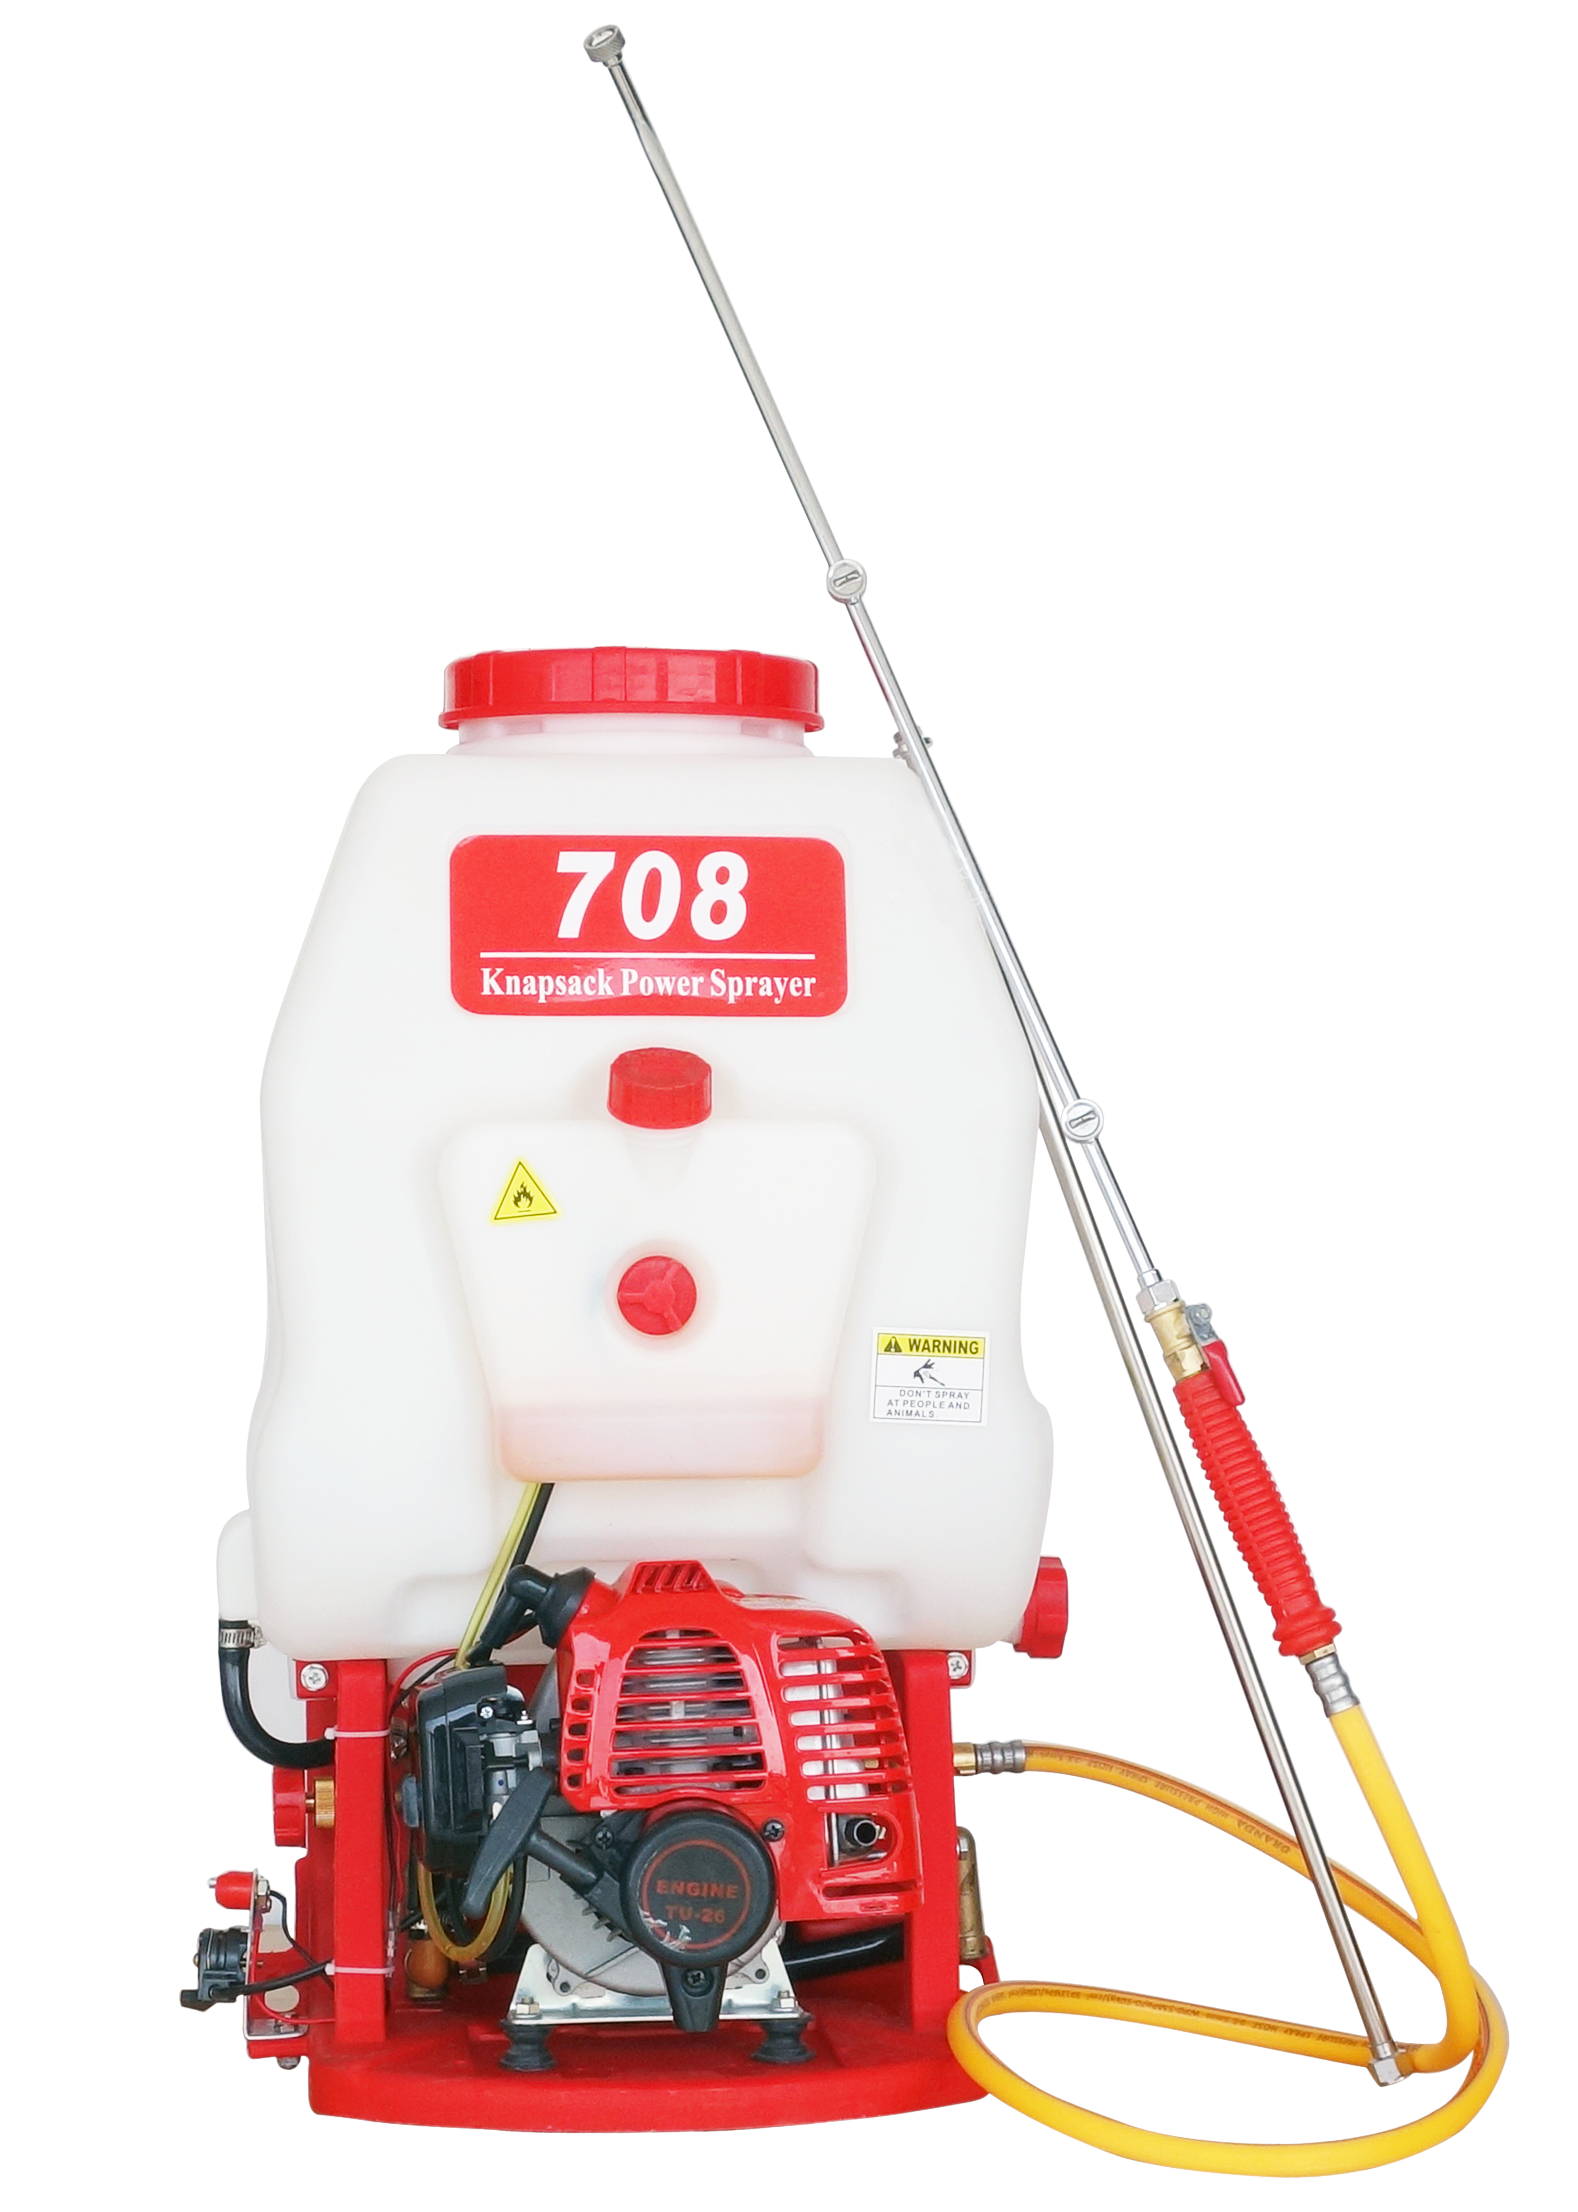 Agriculture Power Sprayer - 708